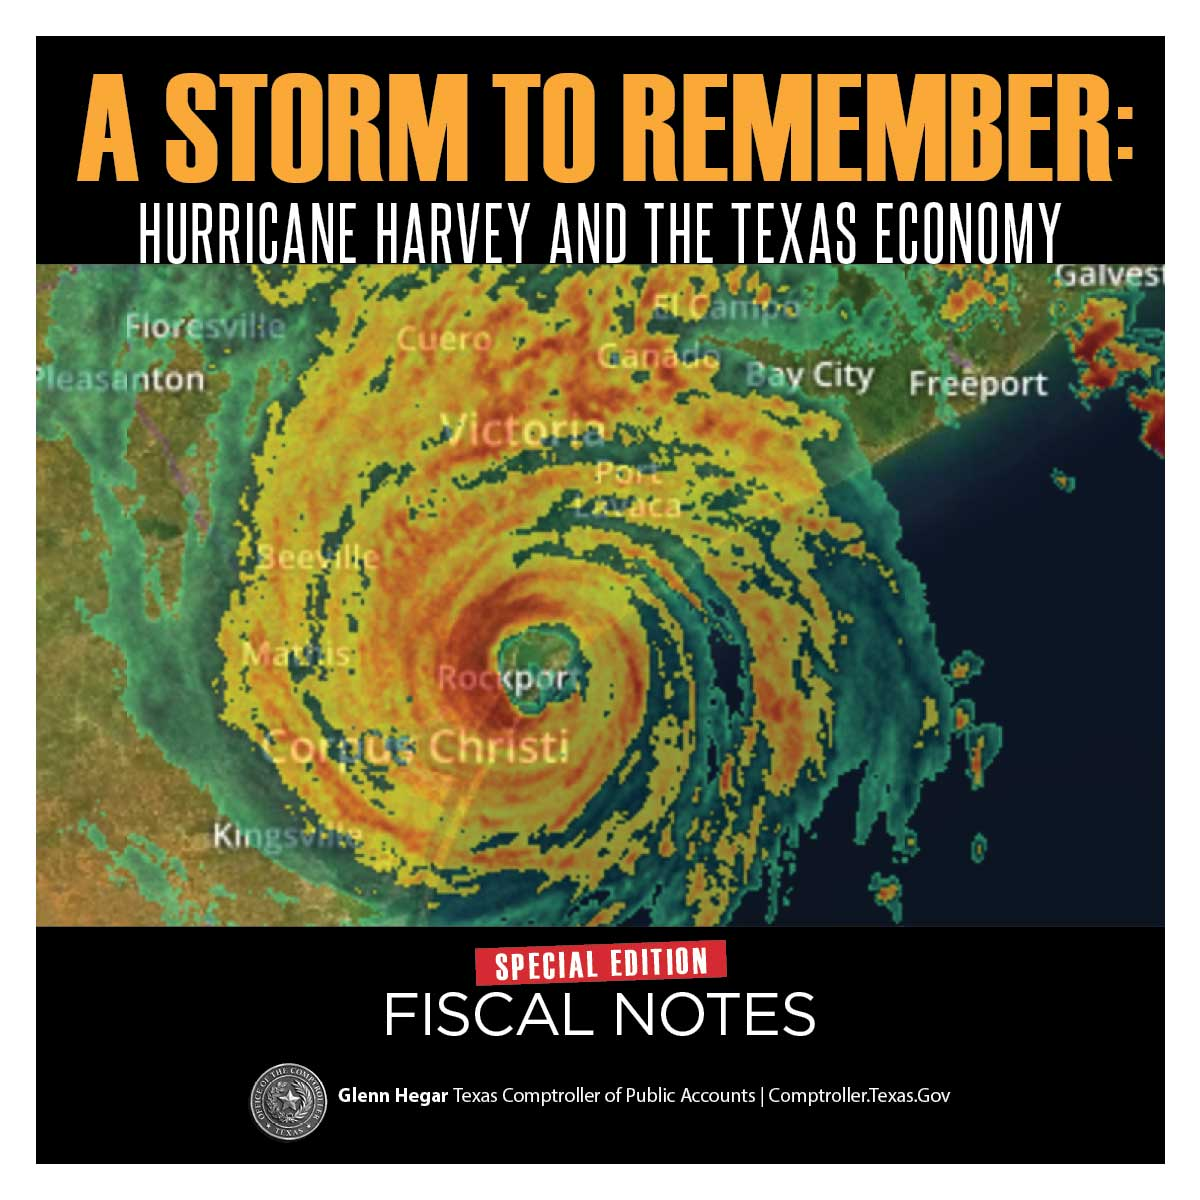 Fiscal Notes Special Edition - A Storm to Remember: Hurricane Harvey and the Texas Economy